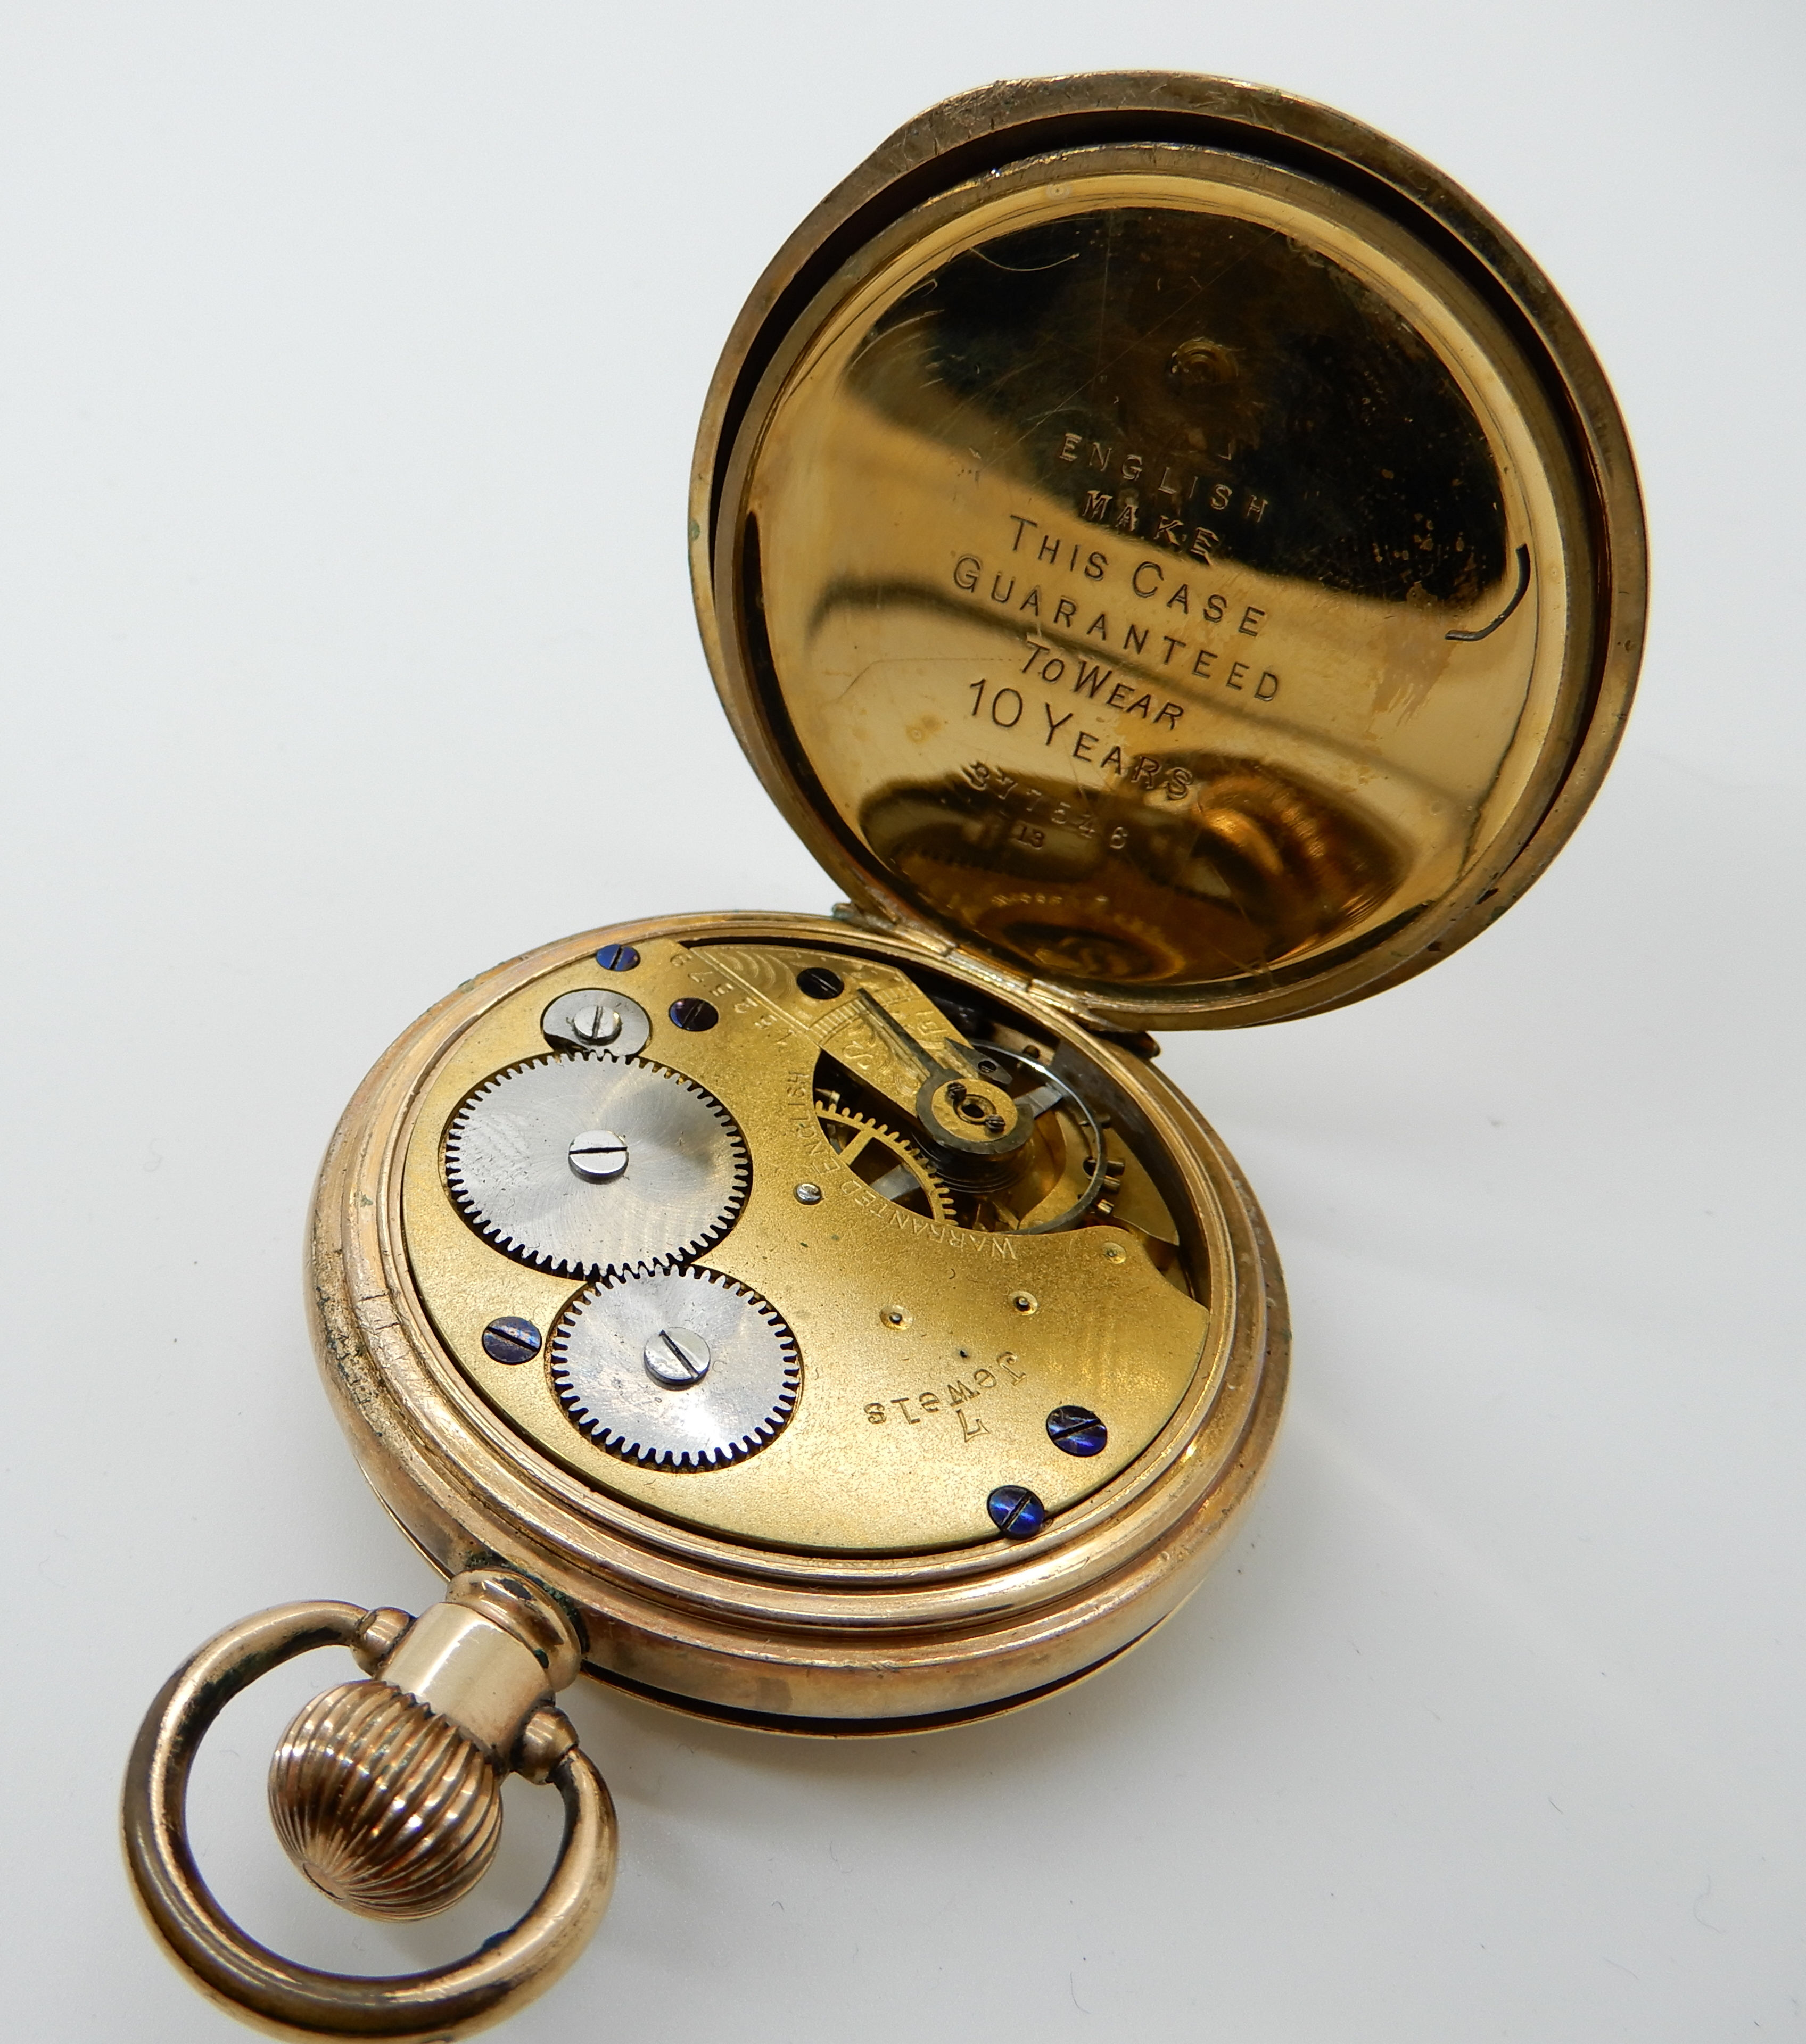 Lot 22 - A gold plated half hunter pocket watch with enamelled chapter ring, retailed by Street & Co